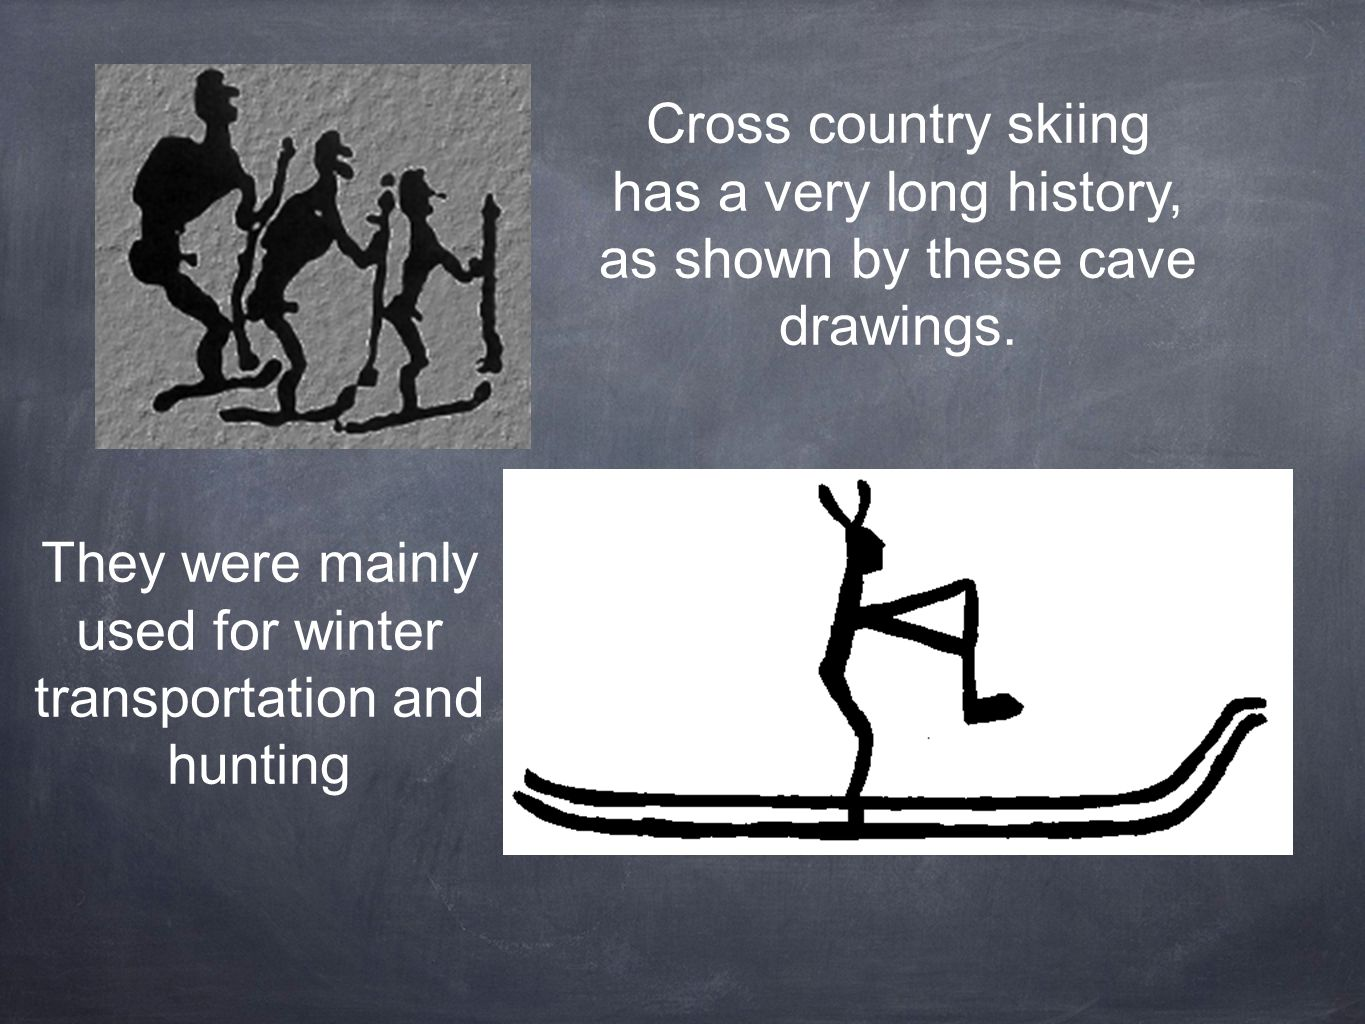 Cross country skiing has a very long history, as shown by these cave drawings.